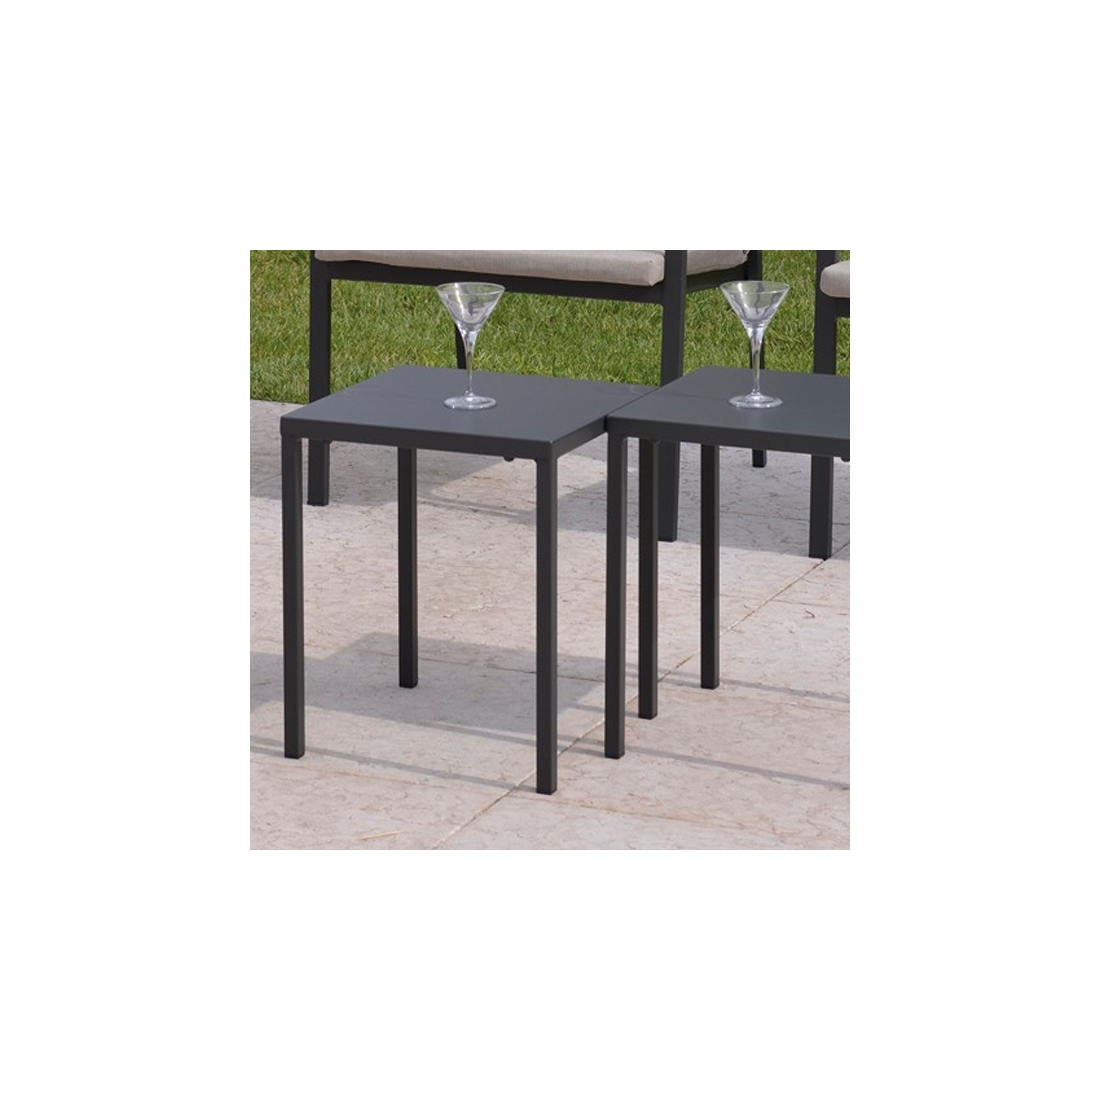 Petite table basse ronde jardin for Petites tables basses de salon